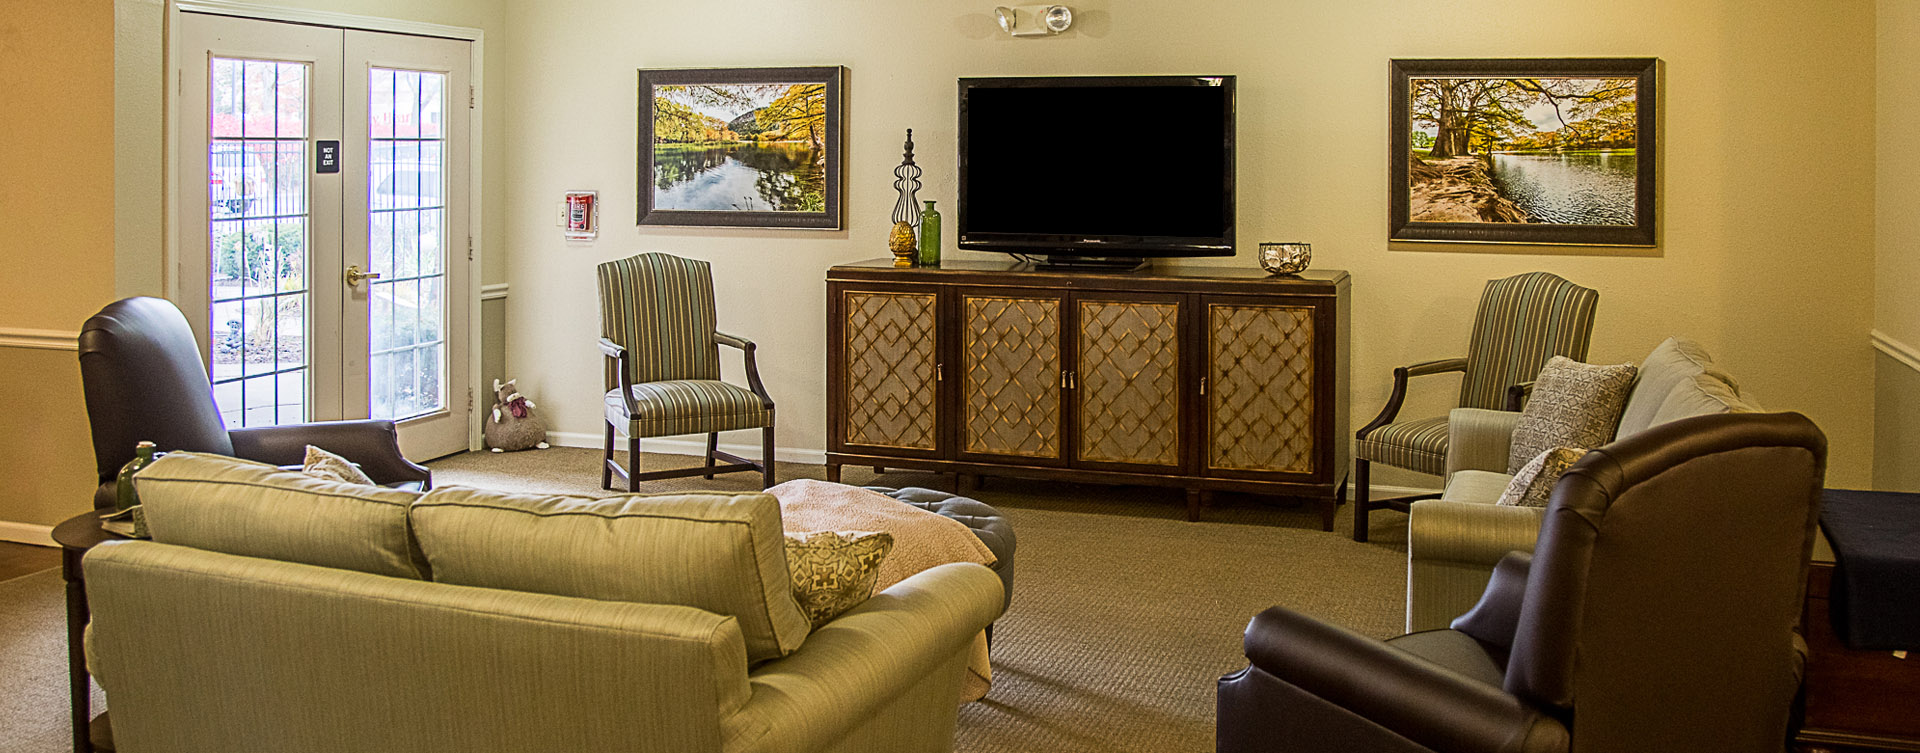 Chairs and sofas sit higher and are easier to get in and out of in the Mary B's living room at Bickford of Davenport